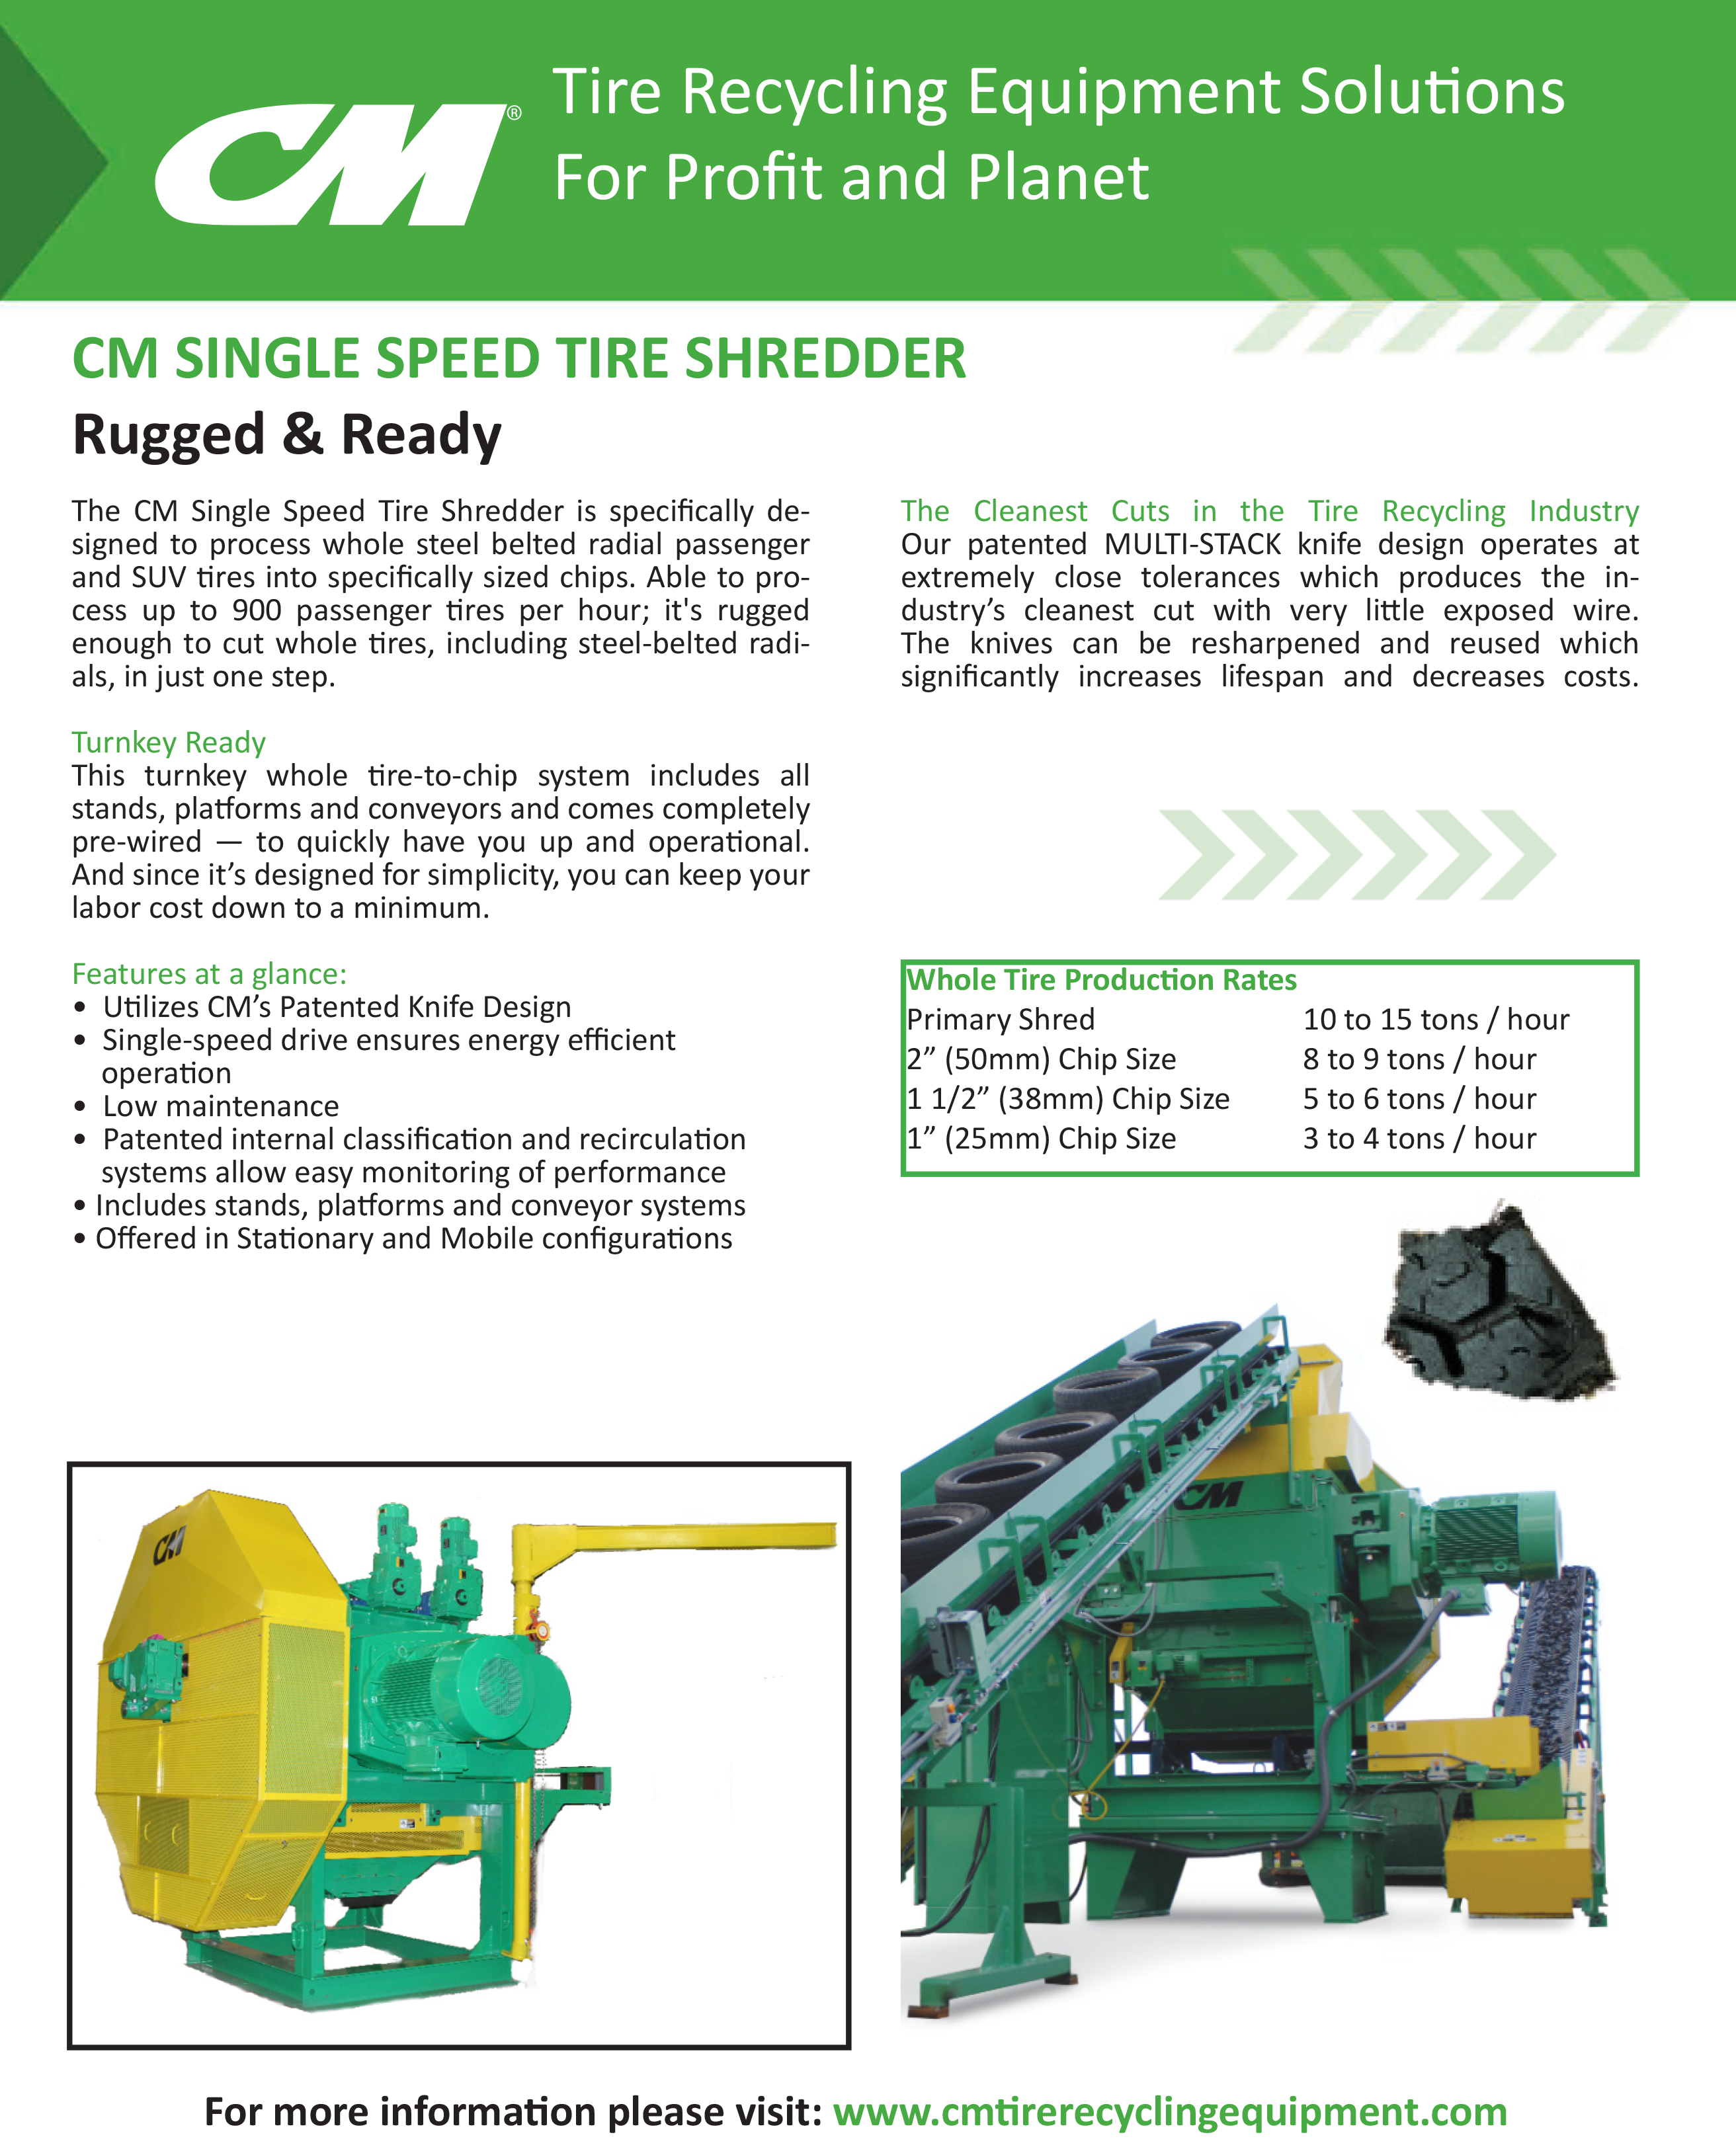 Learn more by viewing the CM Single Speed Tire Shredder Brochure